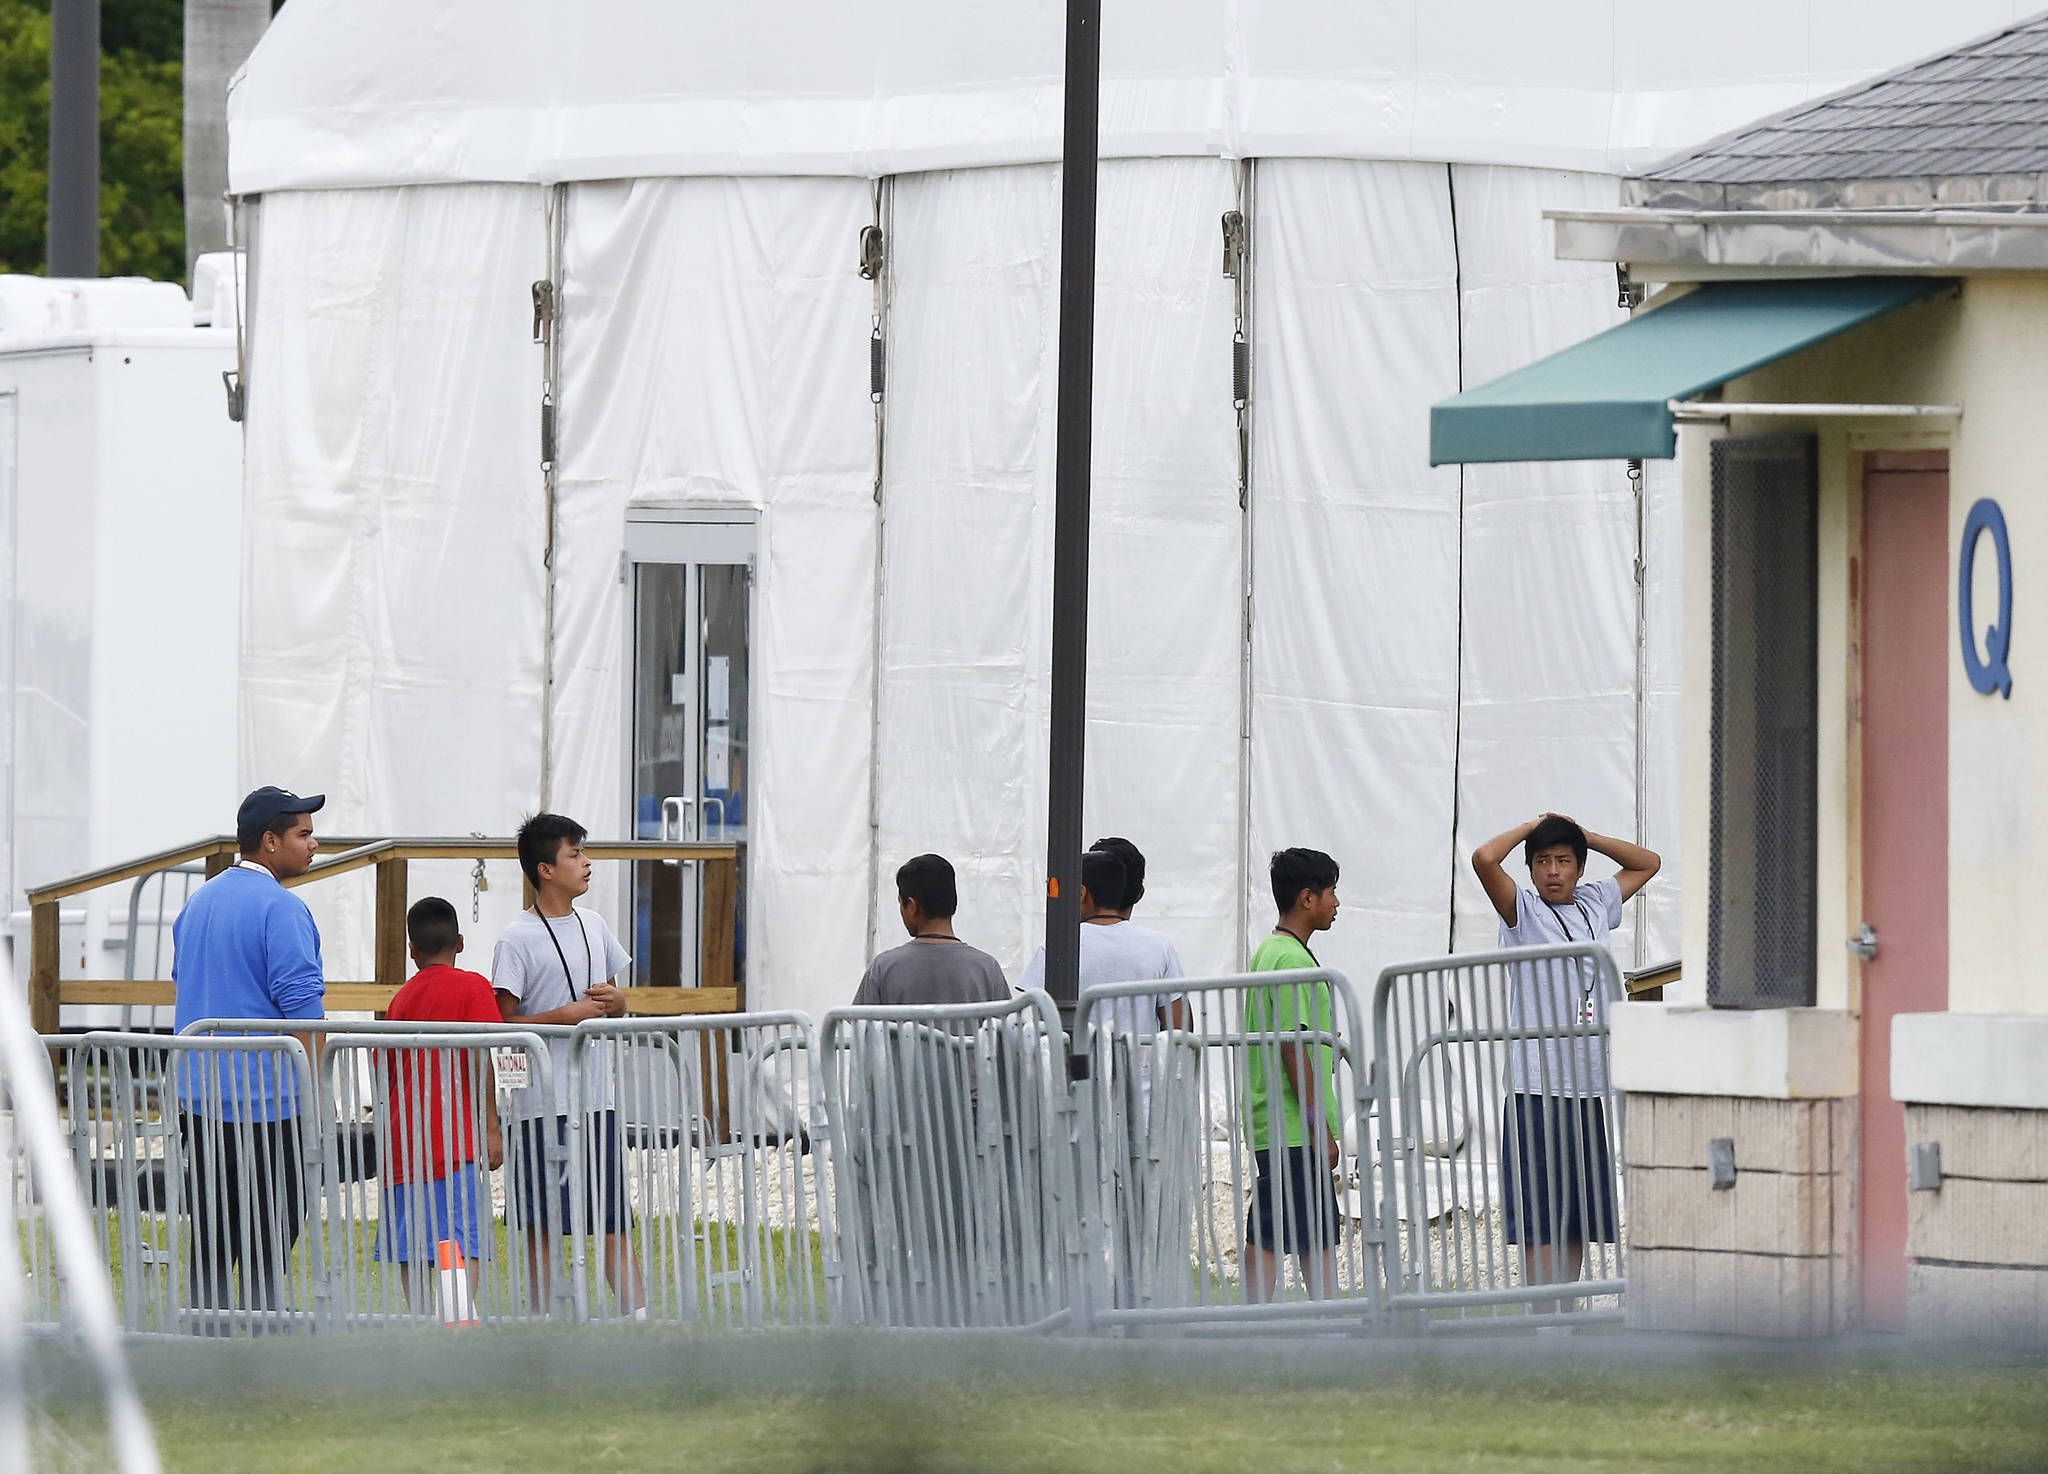 """Immigrant children walk in a line outside the Homestead Temporary Shelter for Unaccompanied Children, a former Job Corps site that now houses them, on Wednesday, June 20, 2018, in Homestead, Florida. U.S. Rep. Carlos Curbelo said he found it """"troubling"""" to see two of his Democratic colleagues turned away from the Miami-area detention center for migrant children. (Brynn Anderson 